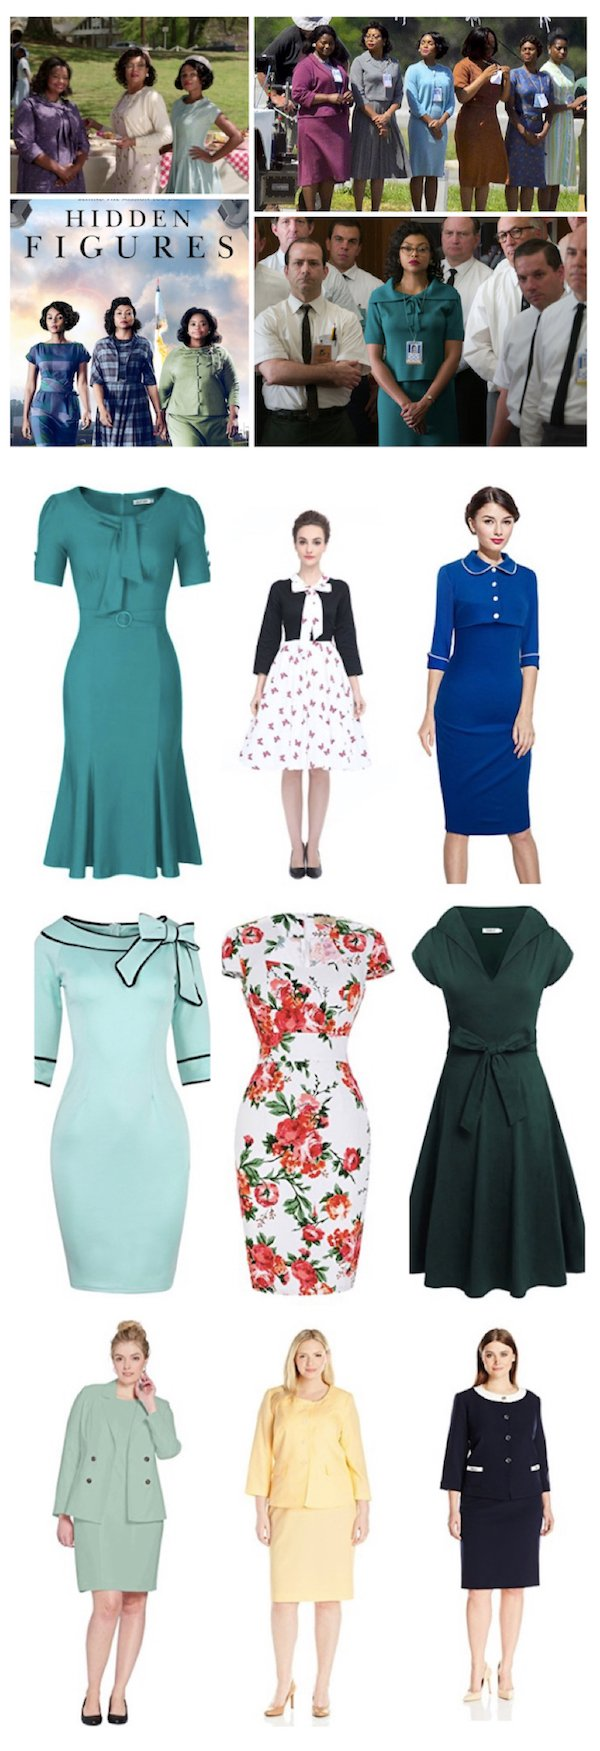 Hidden Figures Costume Ideas